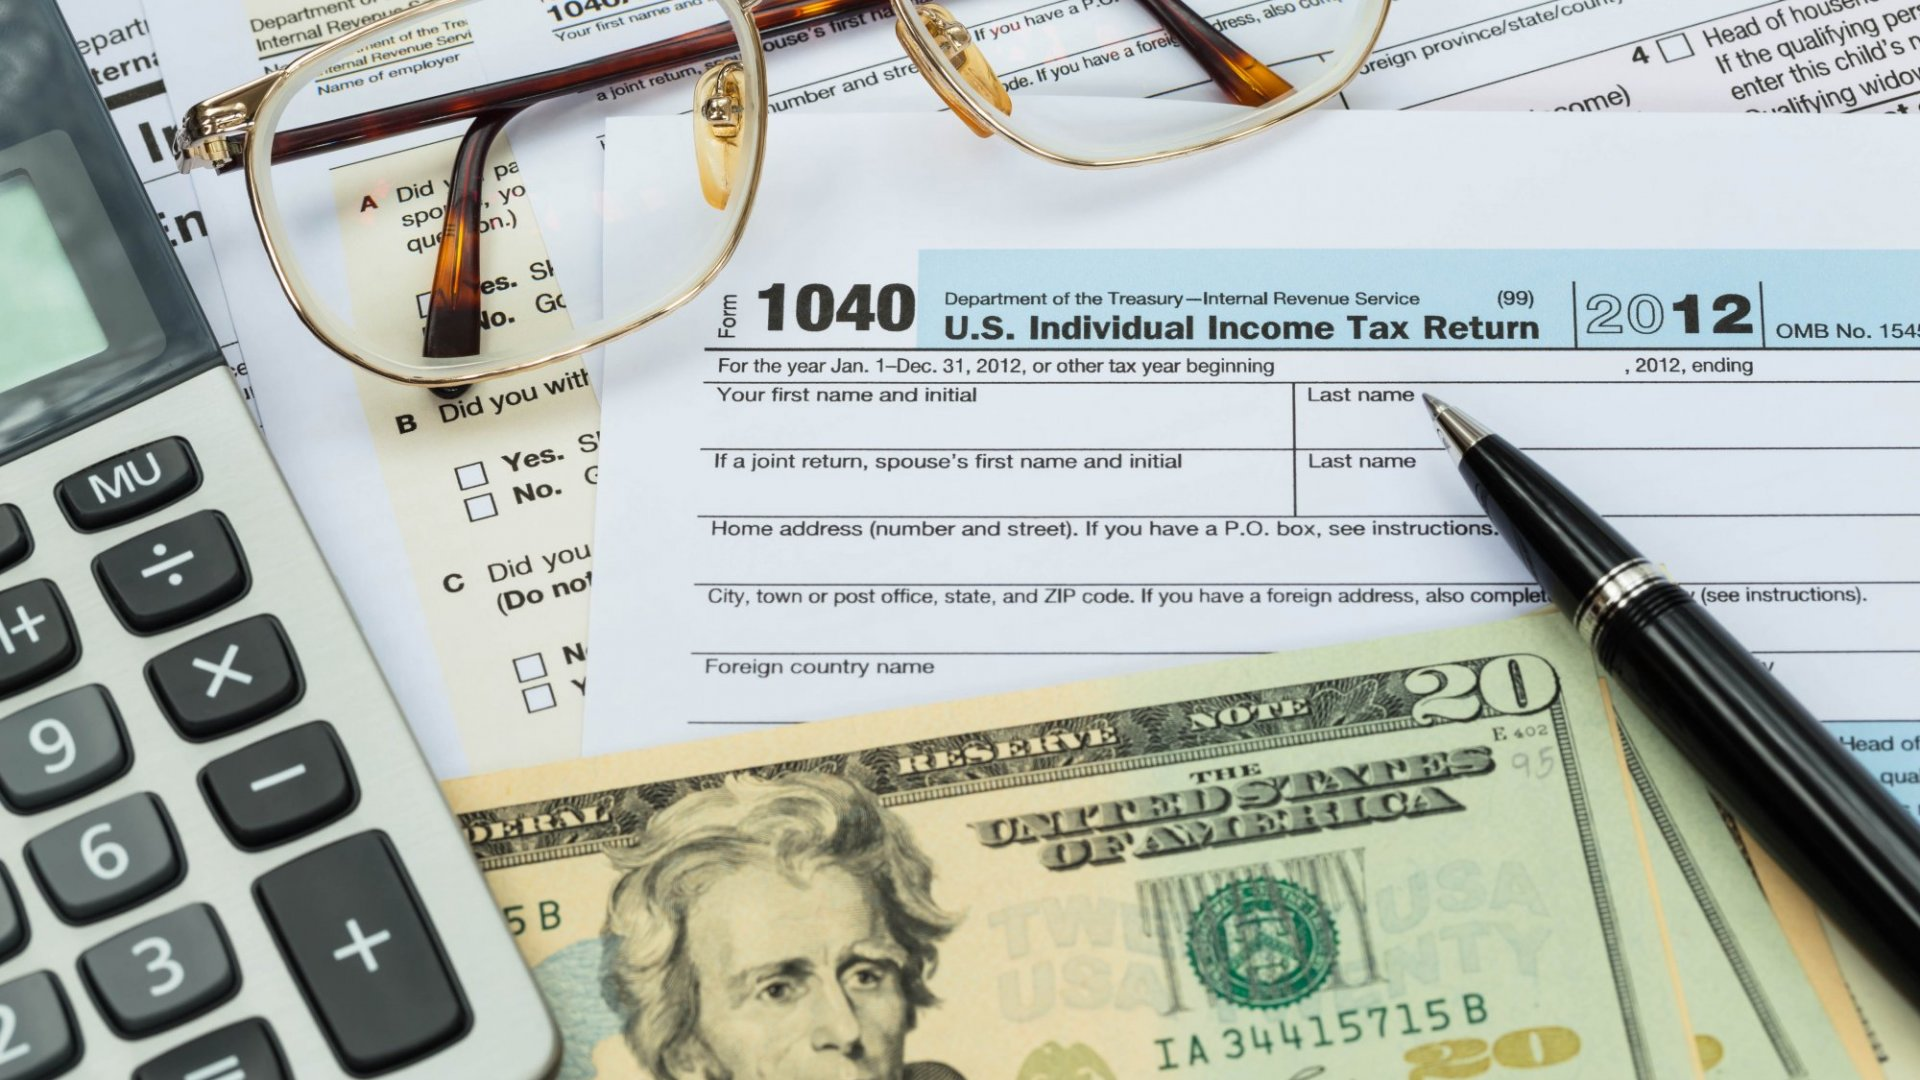 Nearly Half of Americans Are Saving Their Tax Refunds This Year